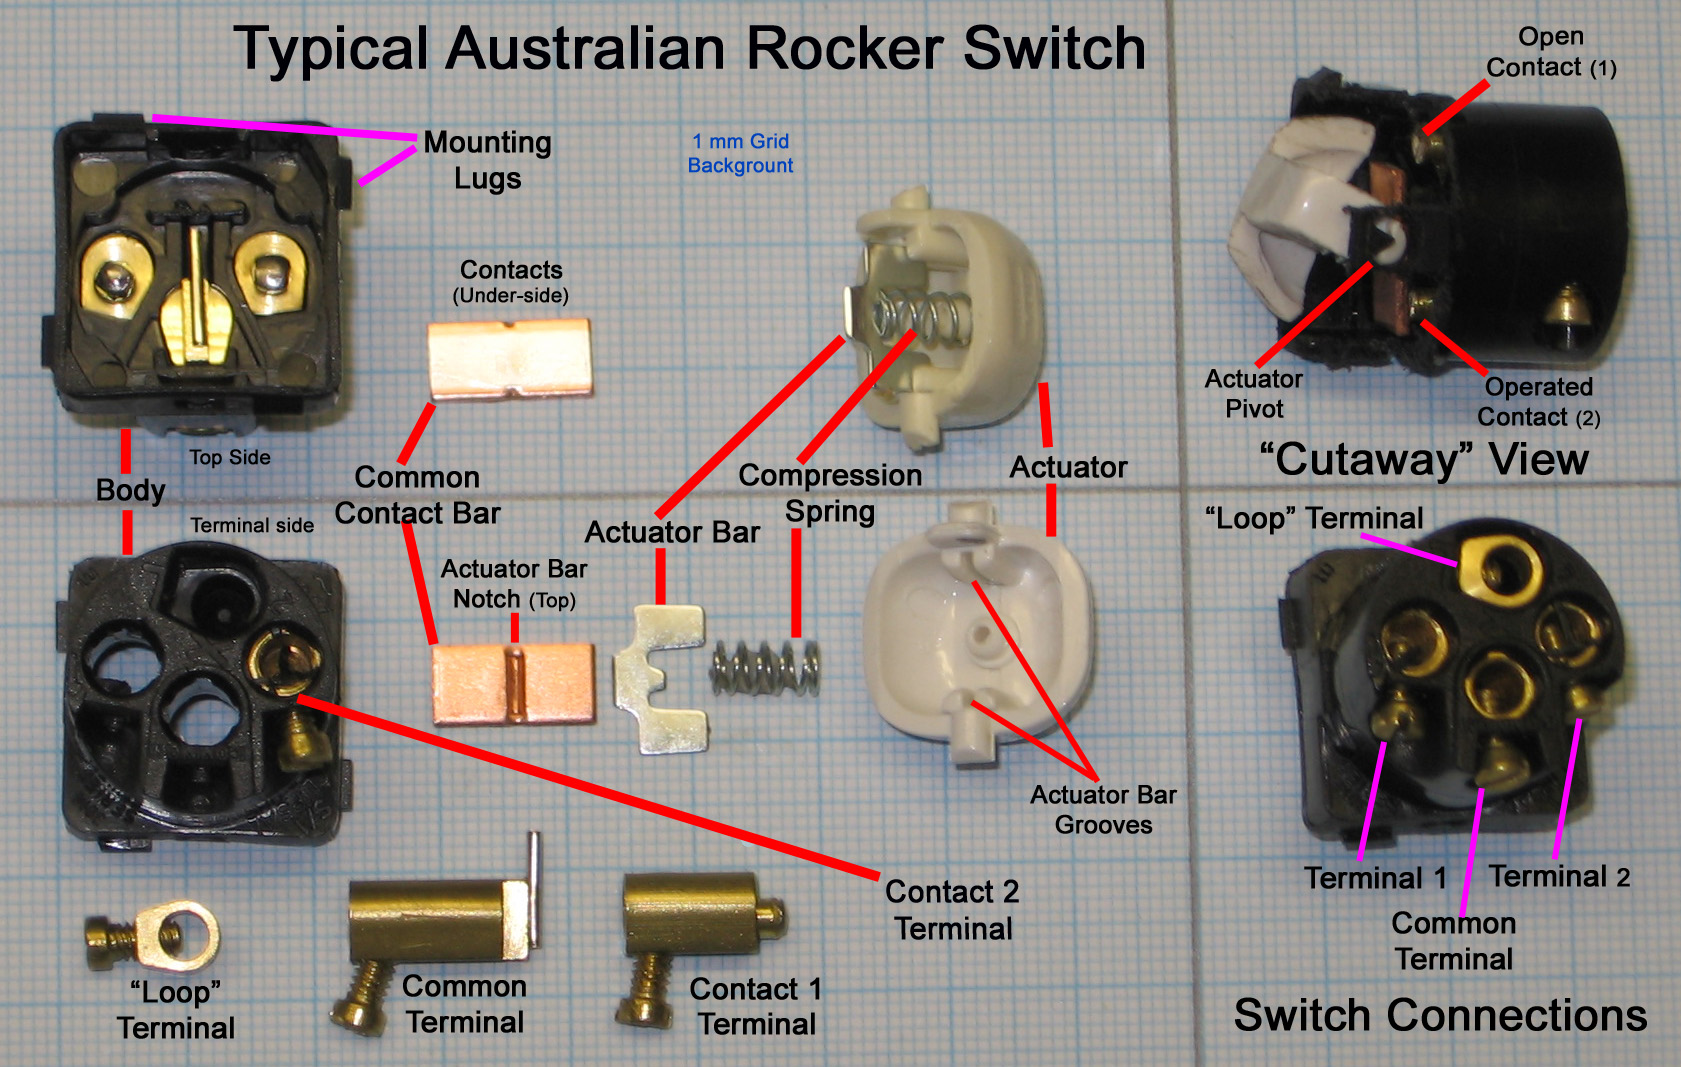 House Light Wiring Diagram Australia : File typical australian rocker switch g wikimedia commons